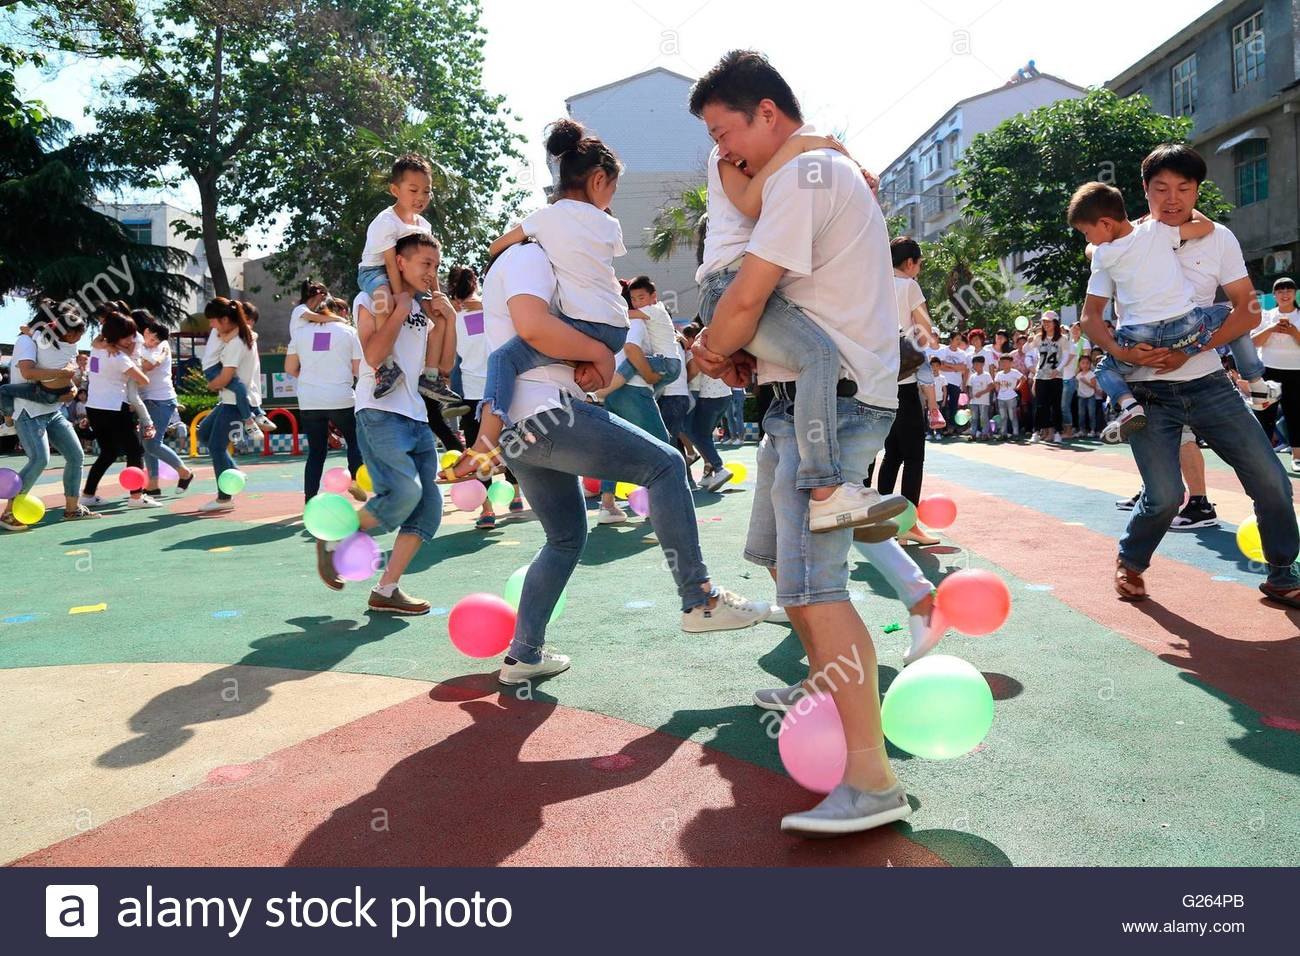 The Parents And Children Take Part In Various Sports Games